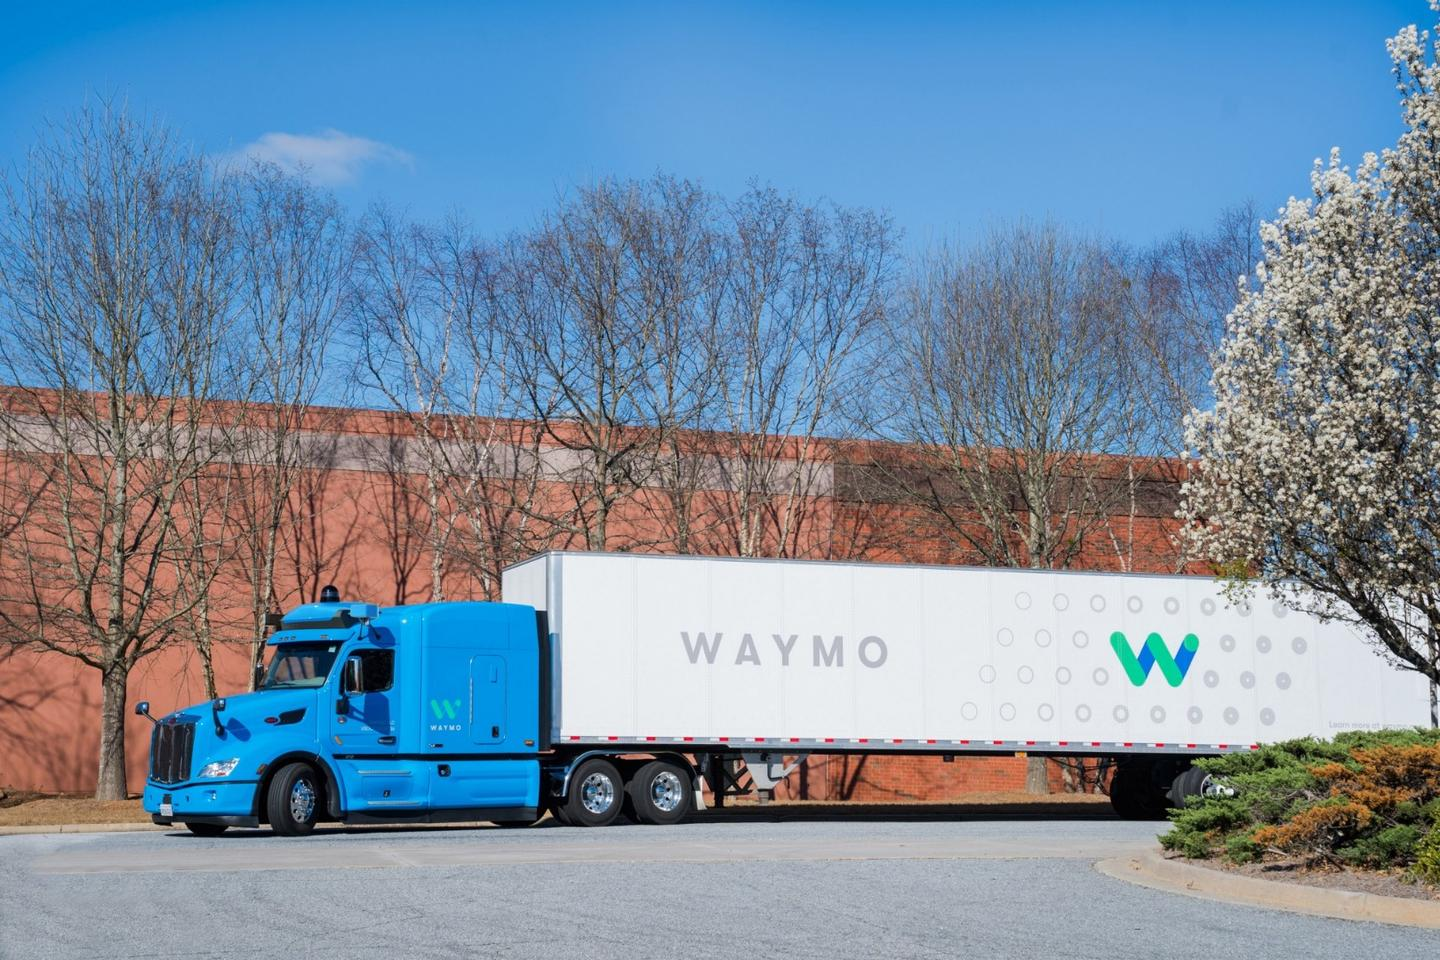 Controlling a truck is very different to driving a car, so Waymo's self-driving big rigs will have a trained human driver in the cab at all times